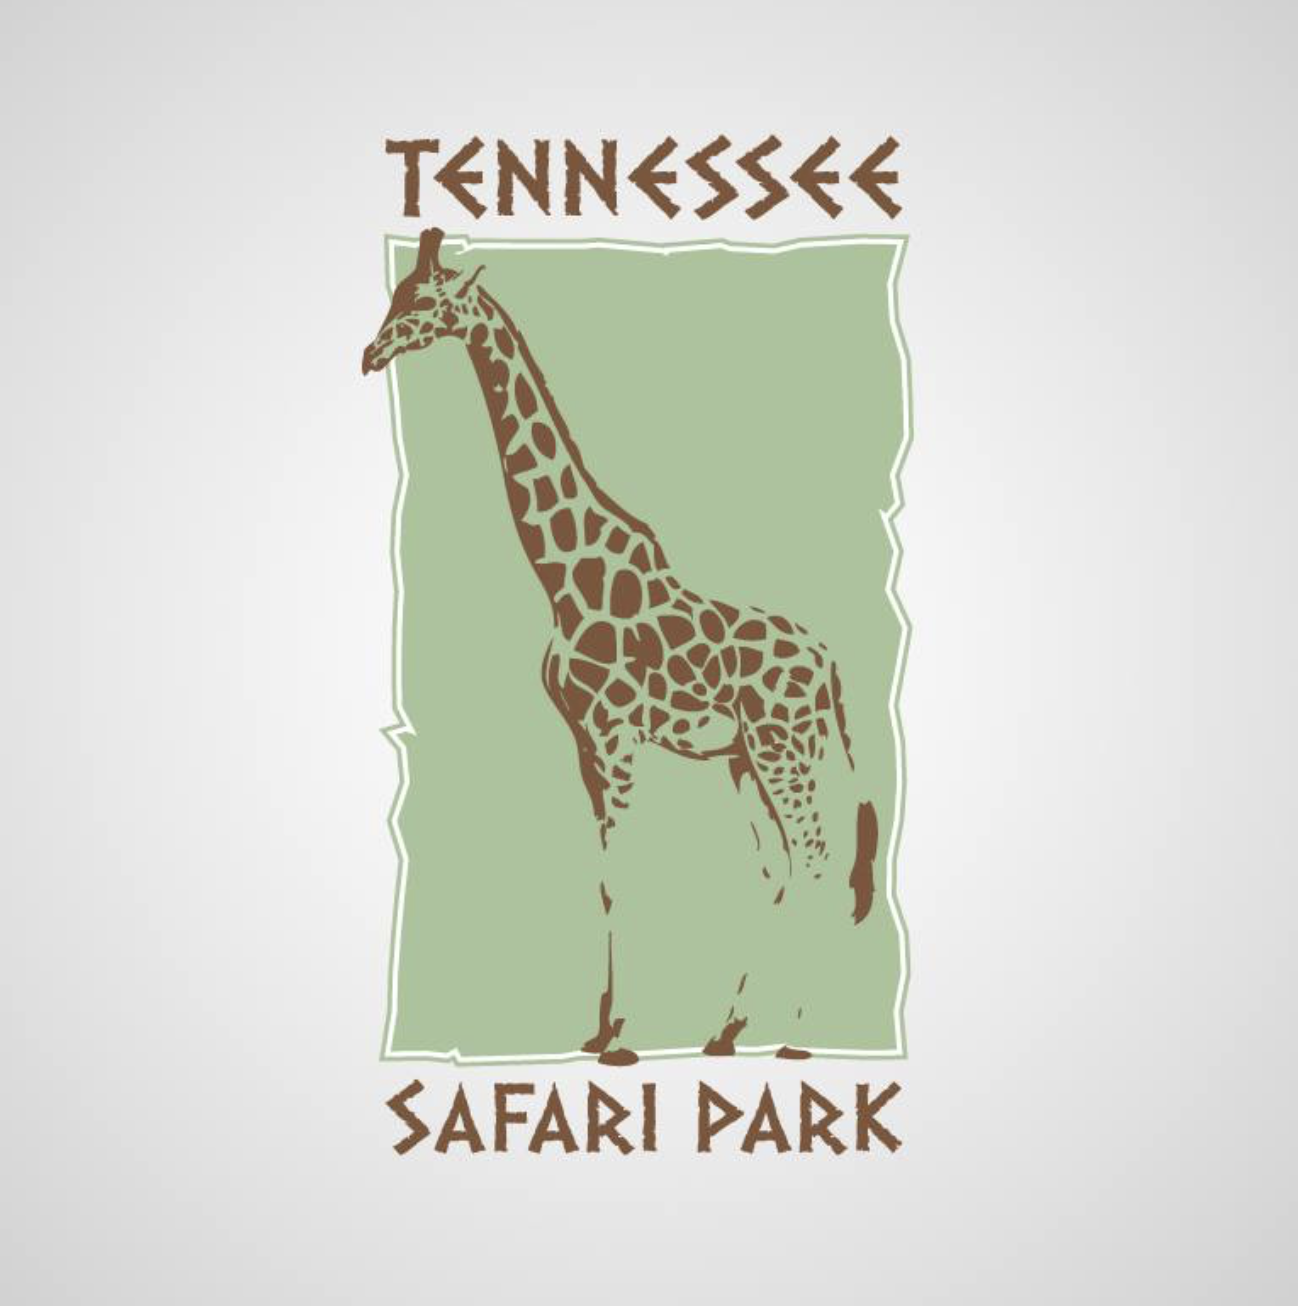 Living conditions at Tennessee drive-through safari raise red flags